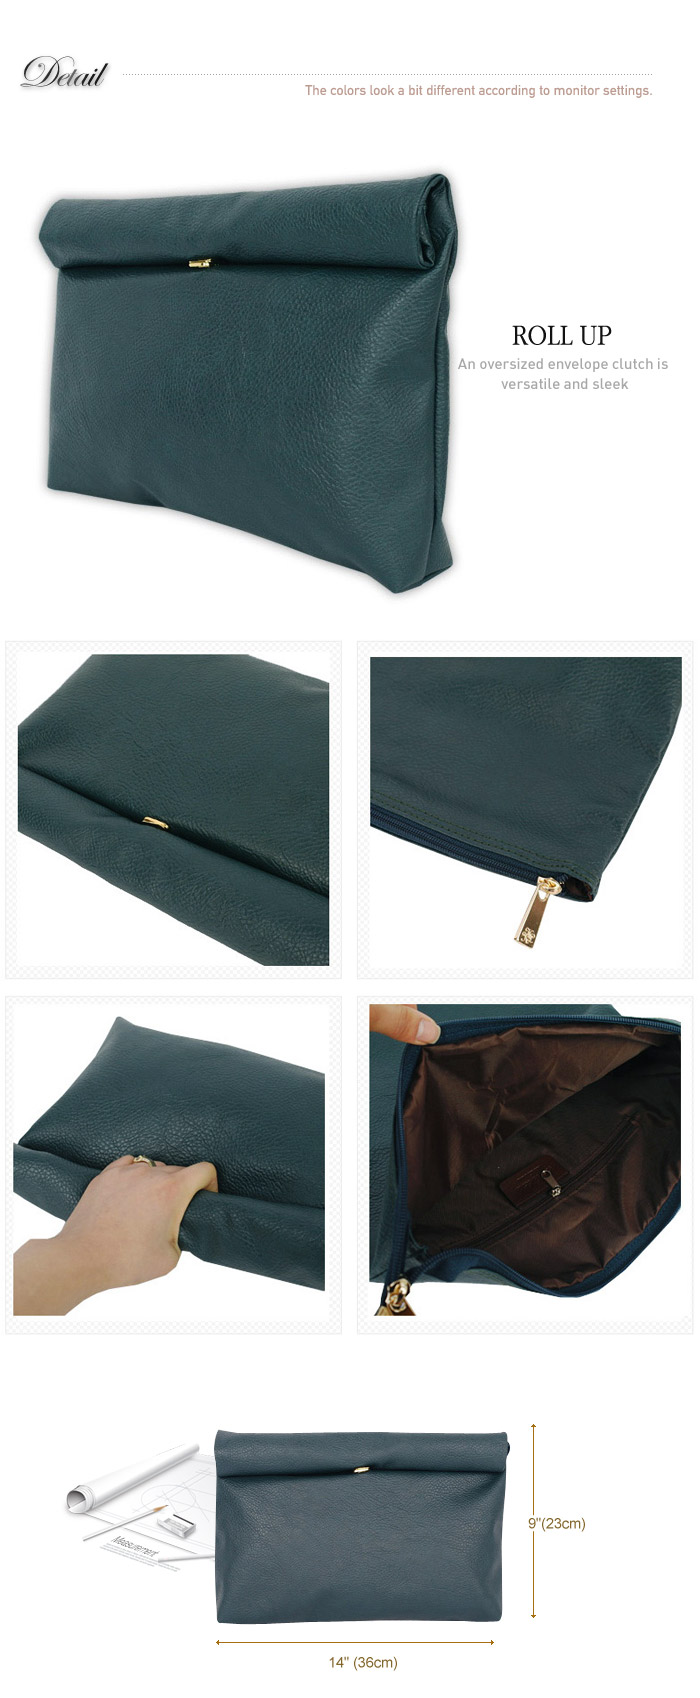 Style2030 New Korea Oversized Envelope Roll Up Clutch Shoulder Bags B1248 | eBay